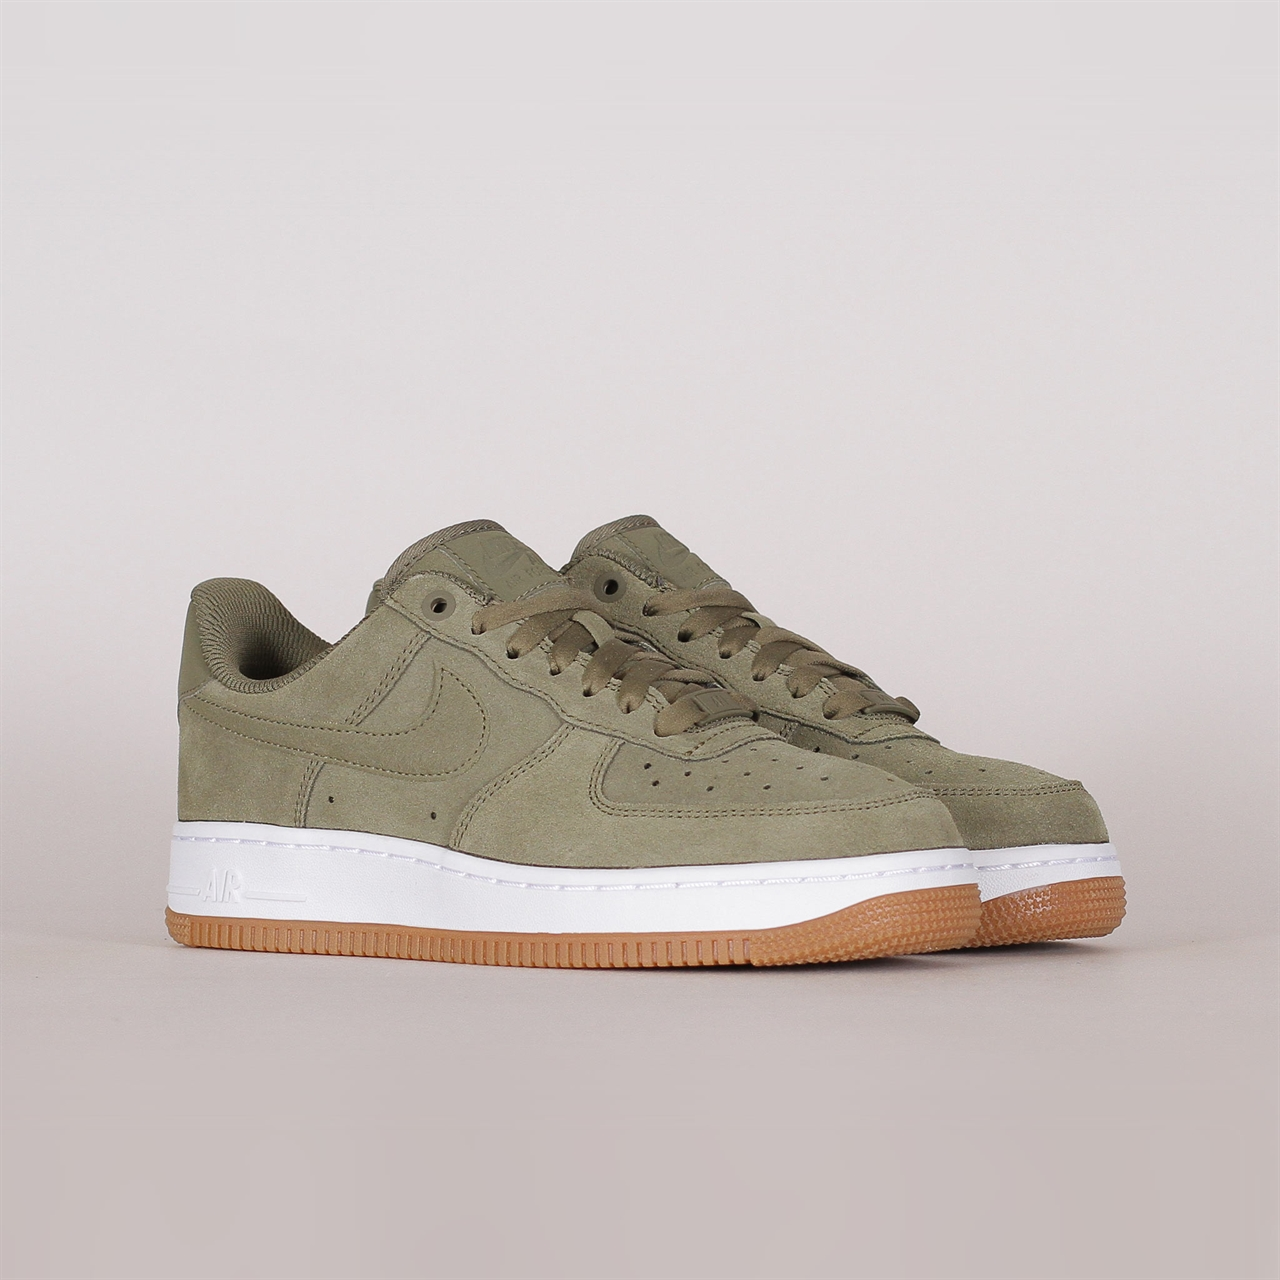 free shipping bed91 cf7a4 nike sportswear womens air force 1 ´07 se av5191 201